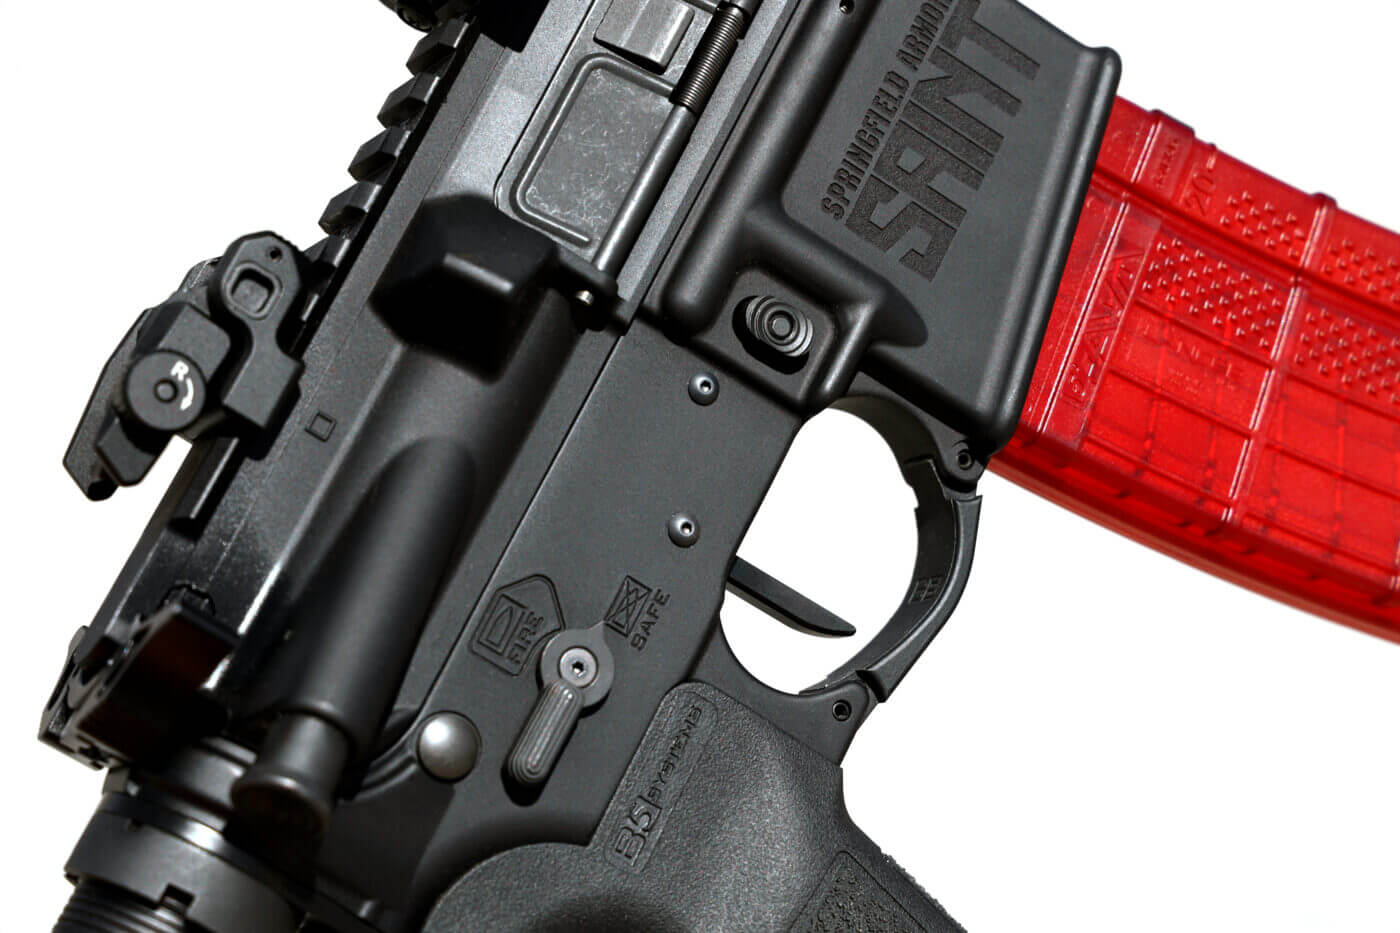 Rise Armament trigger installed in SAINT rifle